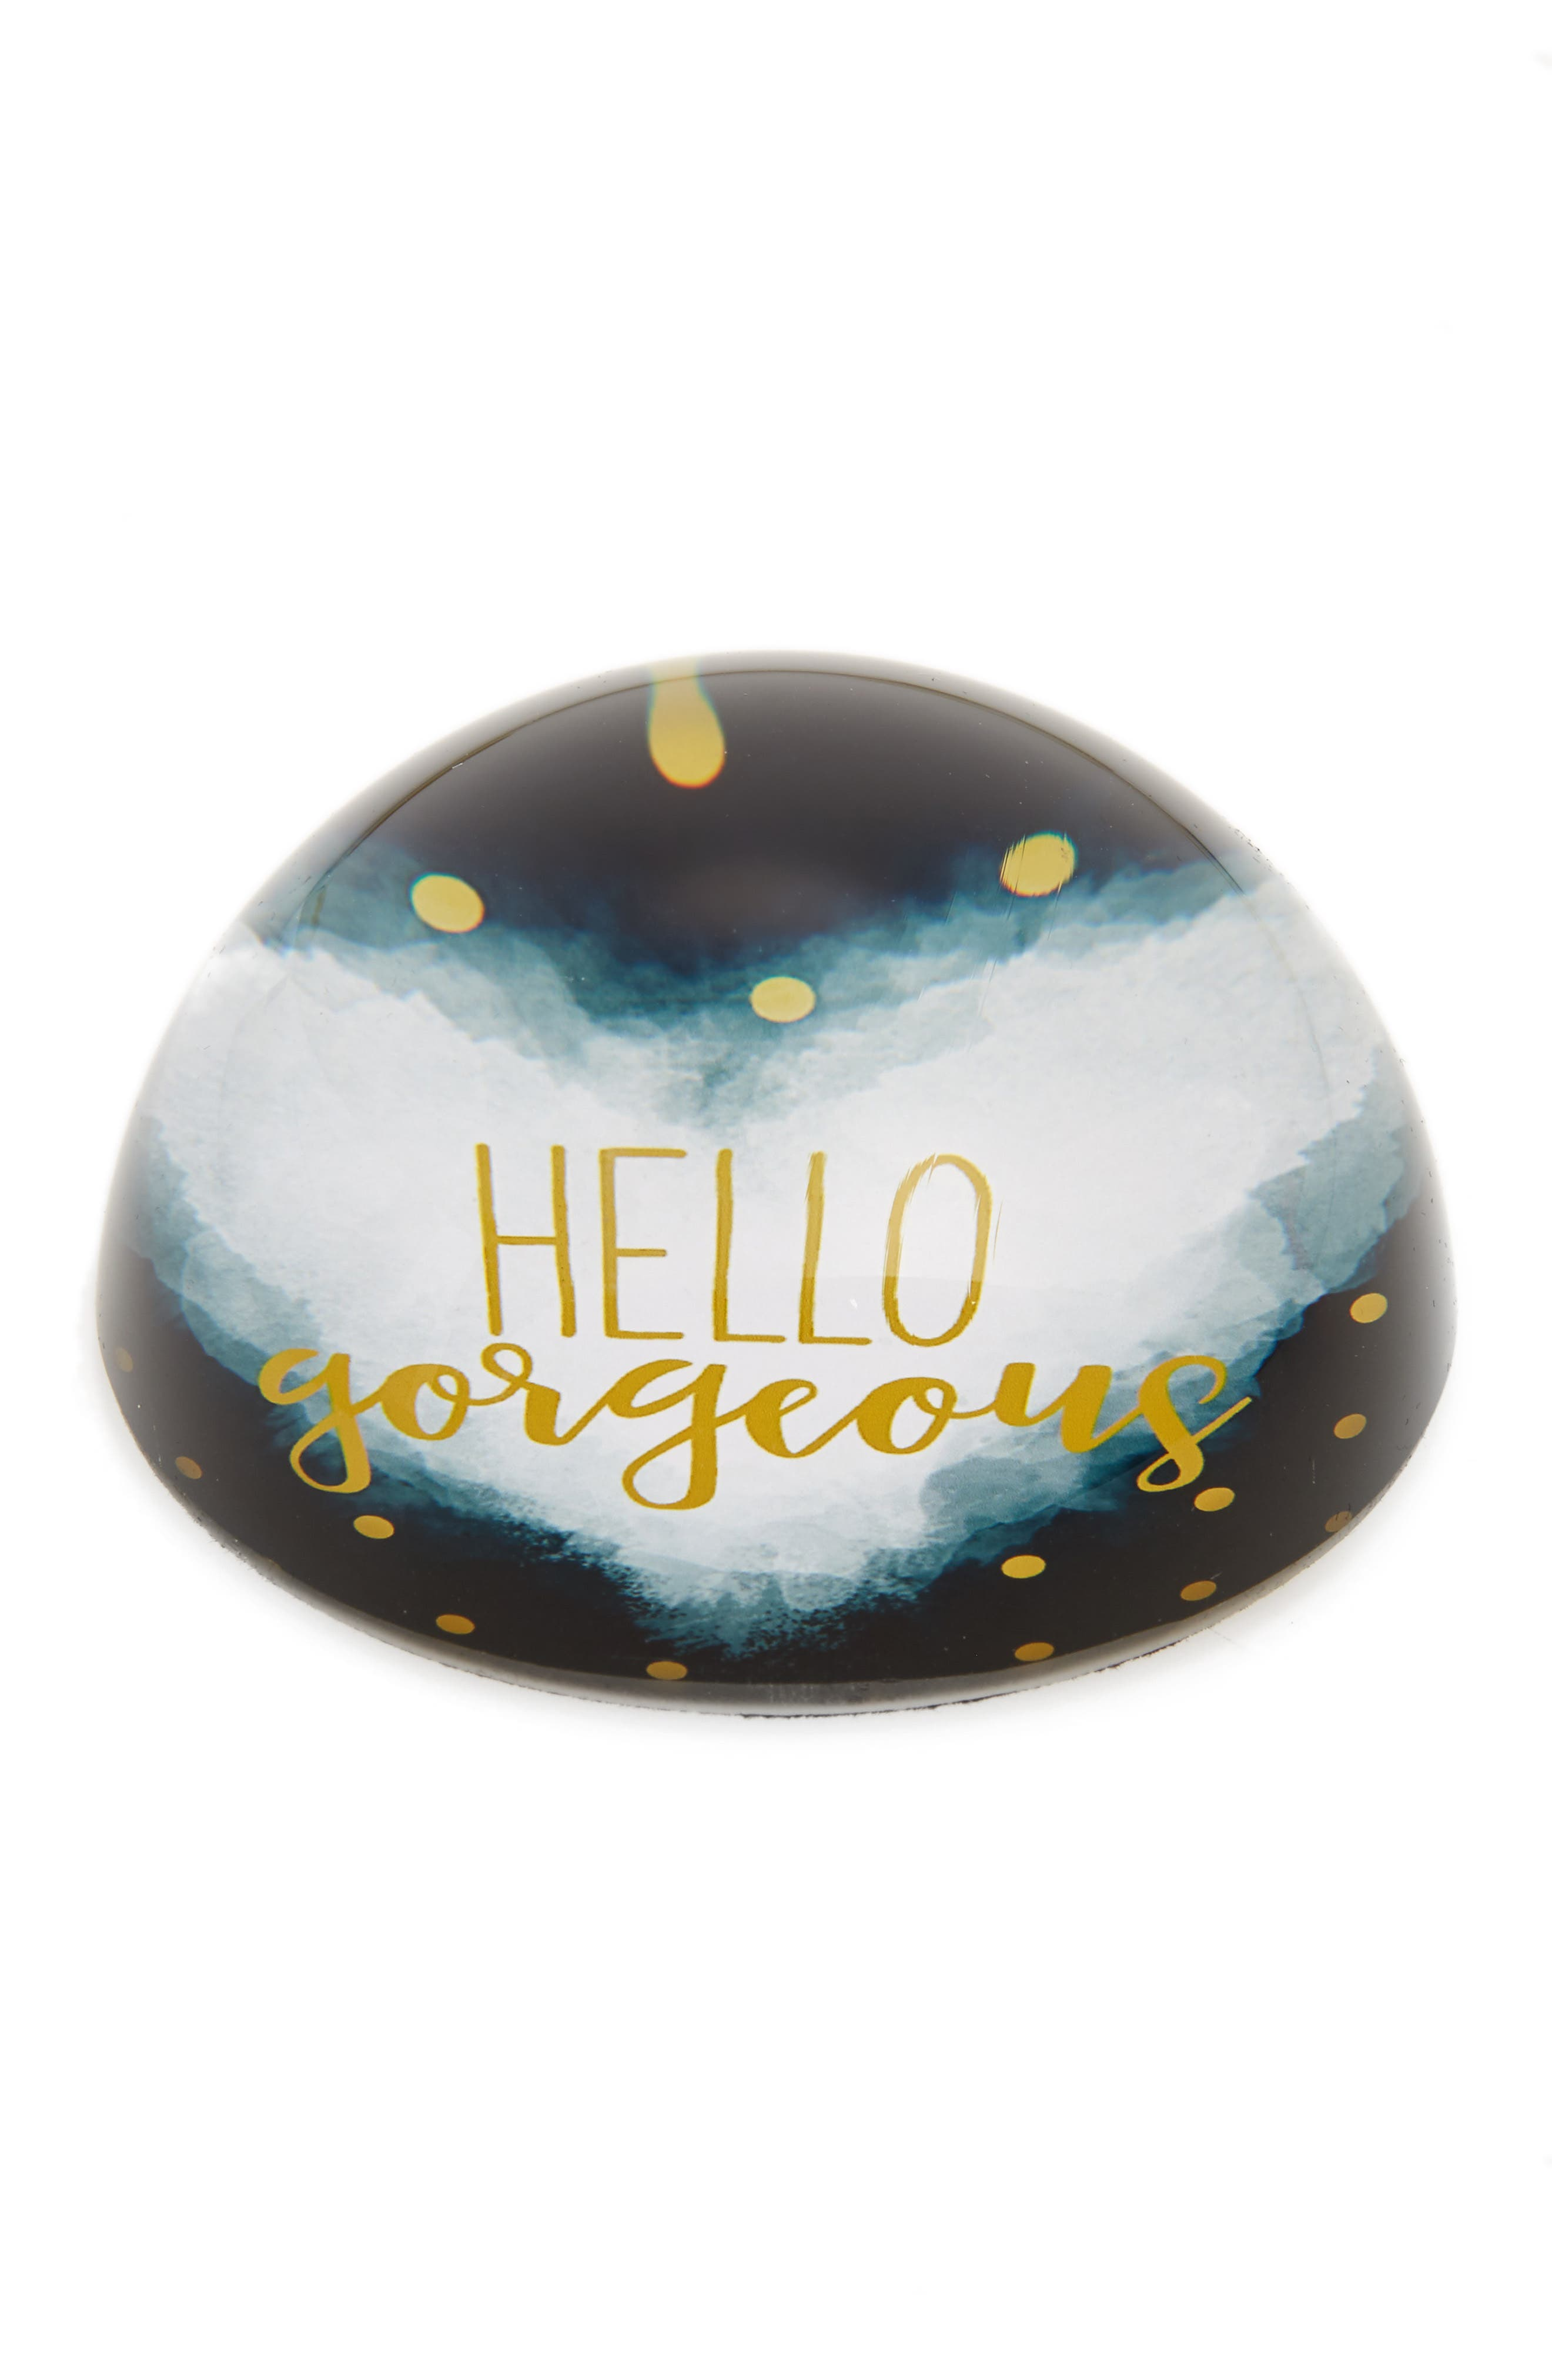 Main Image - American Atelier Hello Gorgeous Paperweight